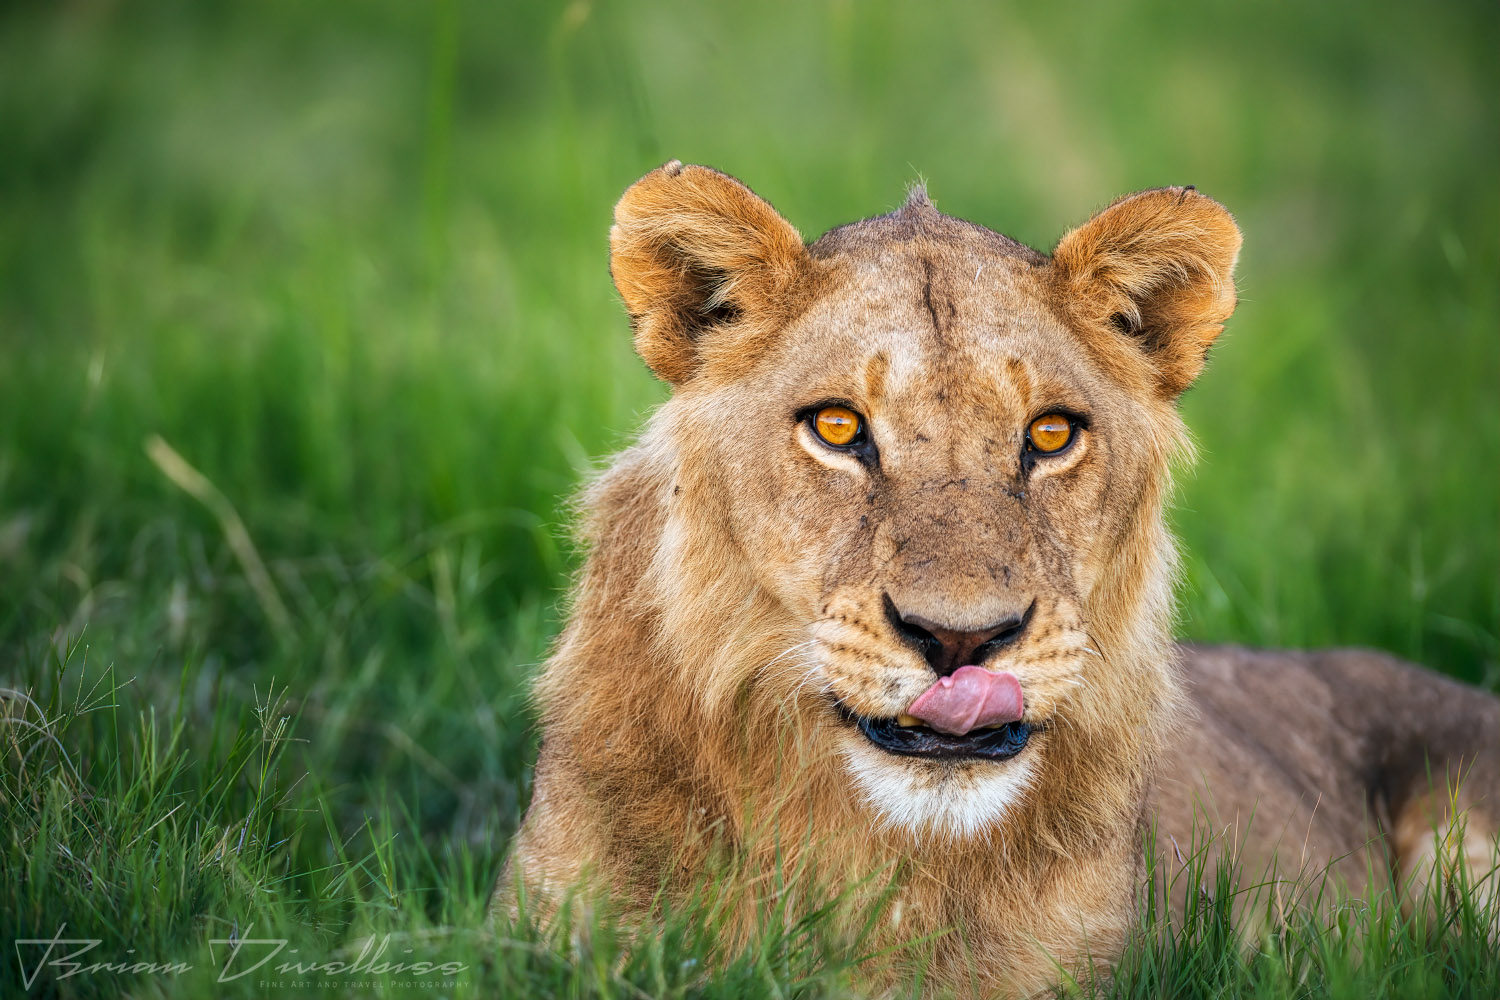 A subadult male lion licking his lips.